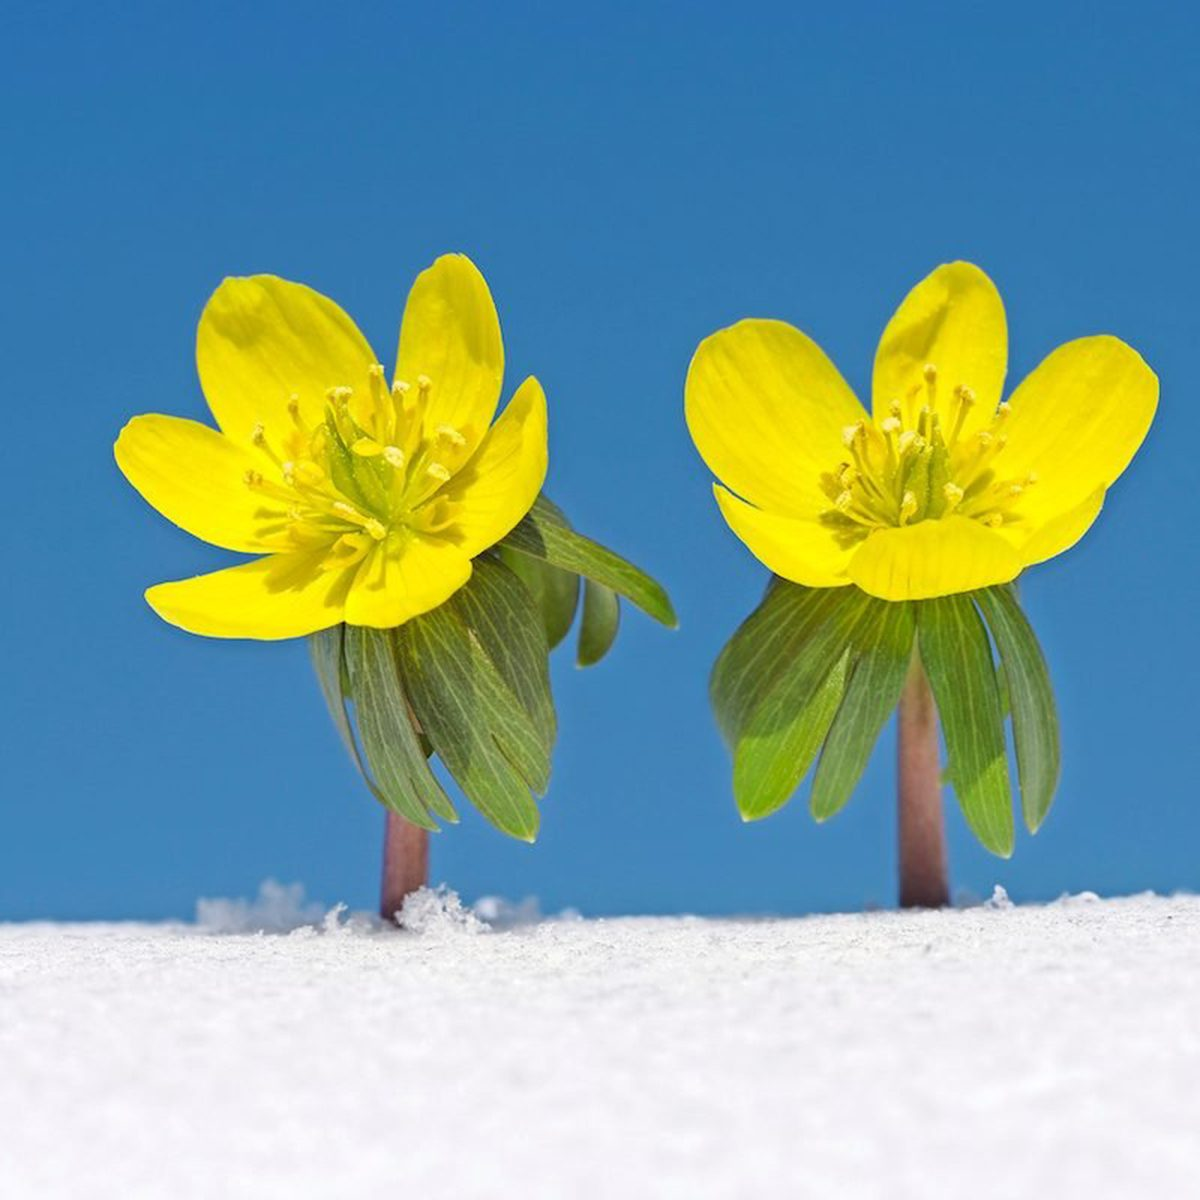 Winter Aconite In Snow, Clear Blue Sky.